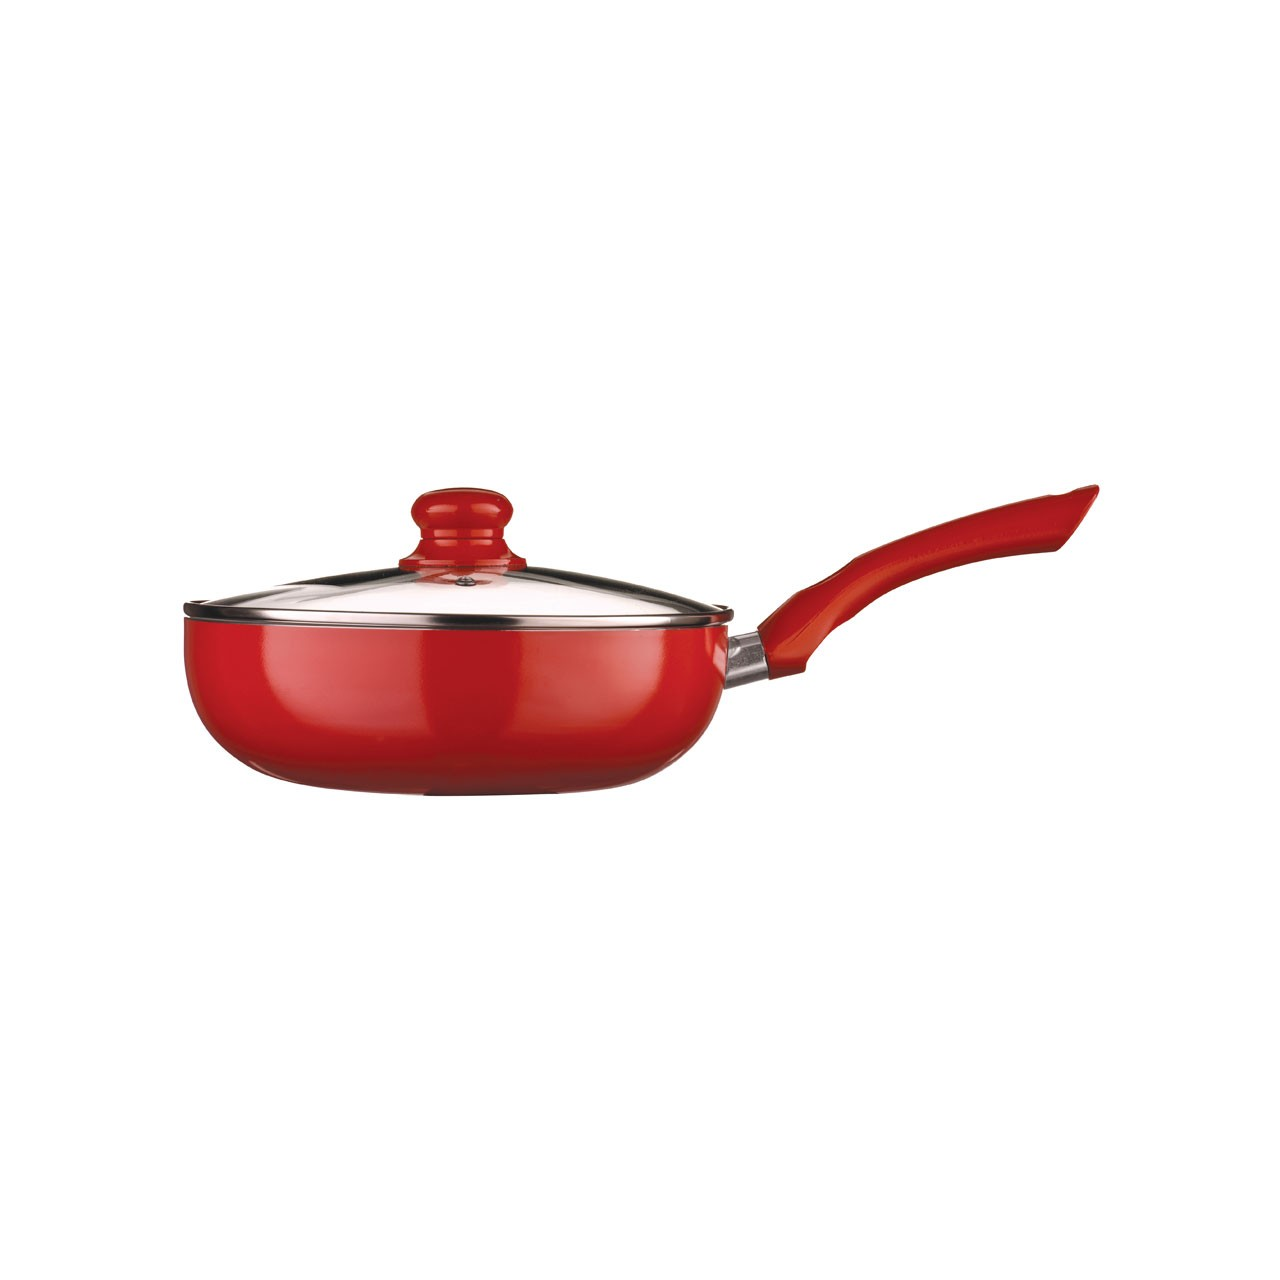 Ecocook Frying Pan with Glass Lid - 24 cm, Red